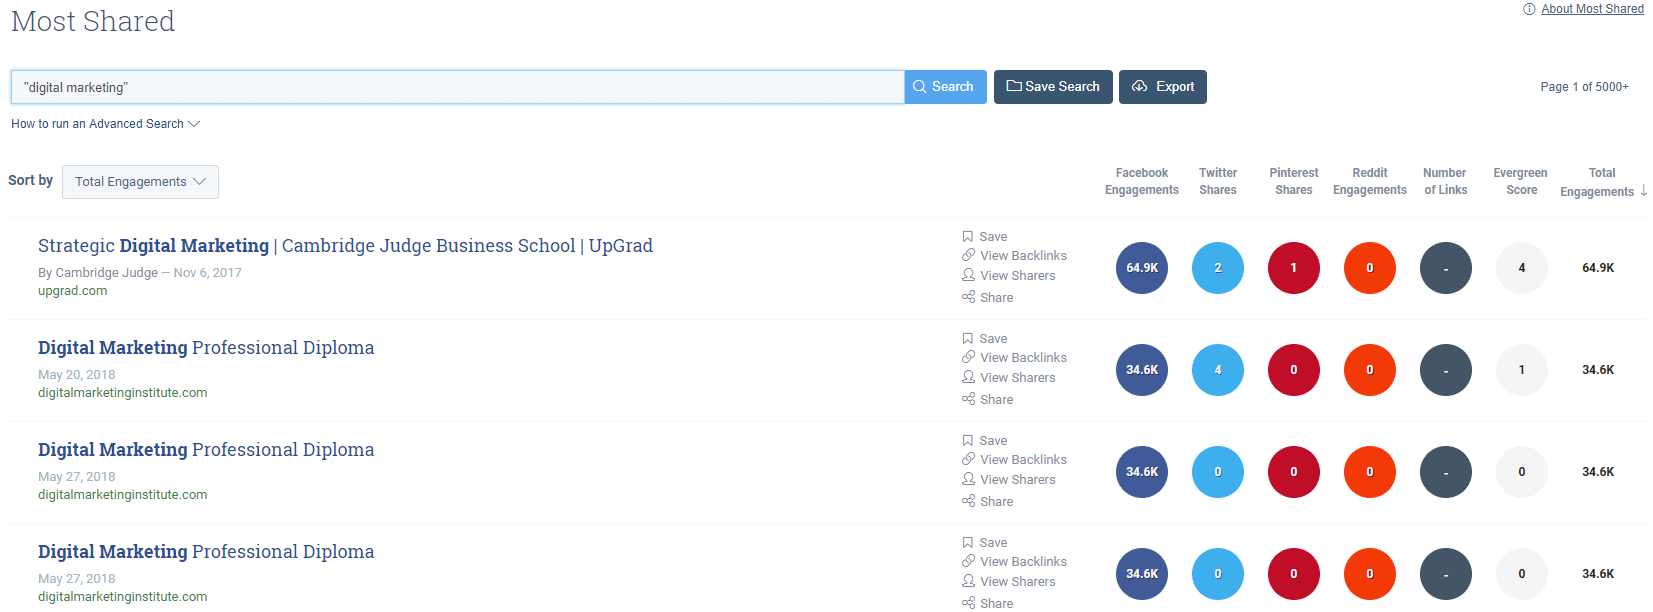 Buzzsumo Most Shared Content - Digital Marketing Results